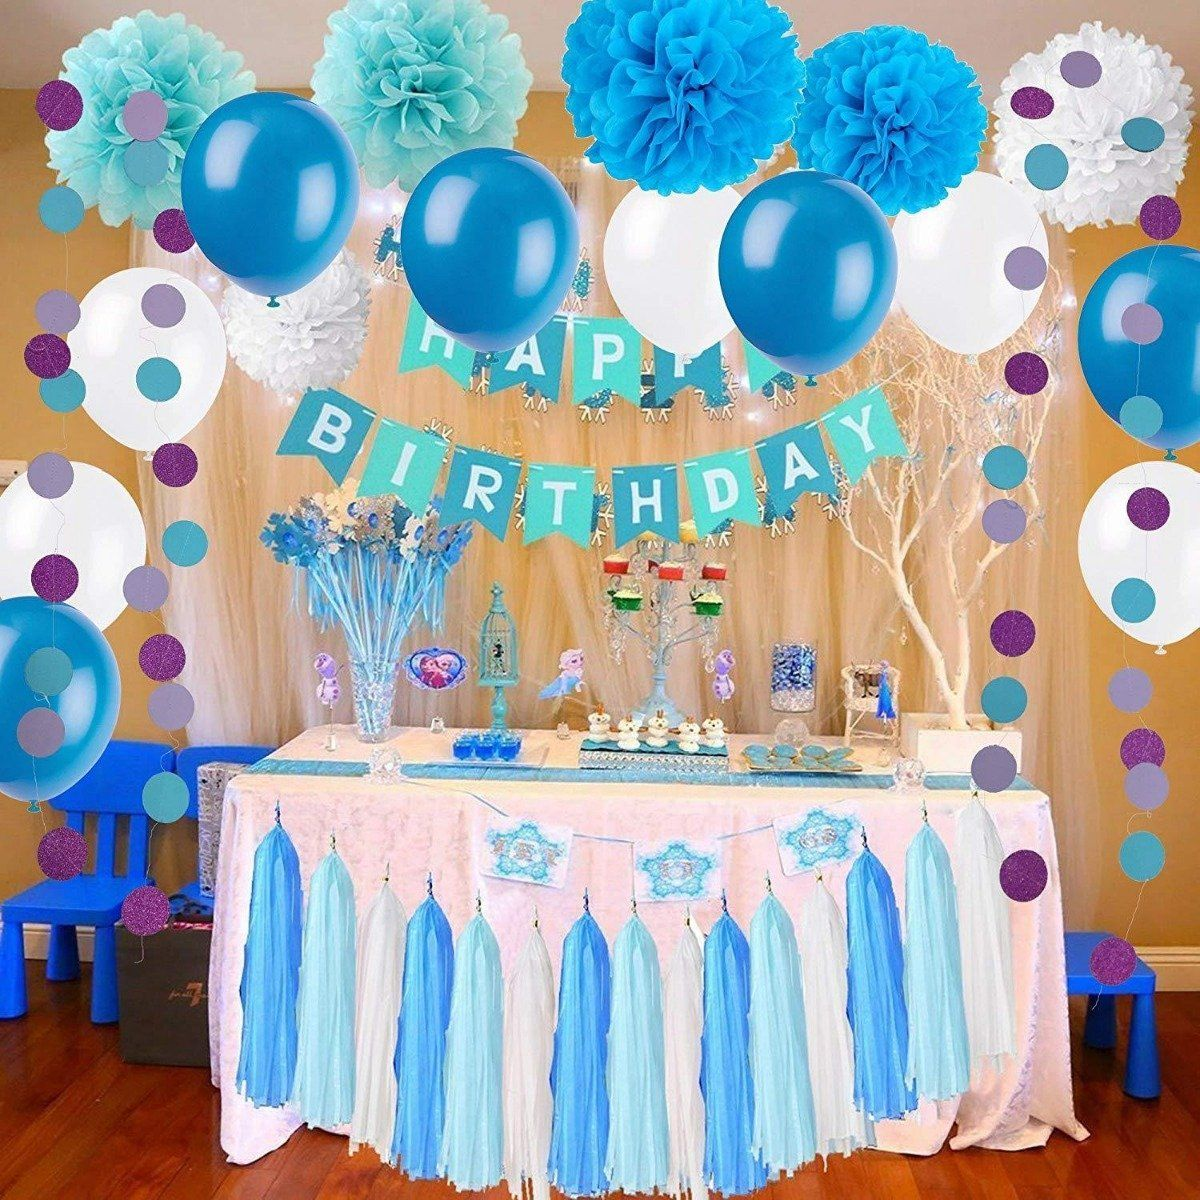 Blue White Pom Poms Party Decoration kit, Happy Birthday Bunting Banner Party Decoration